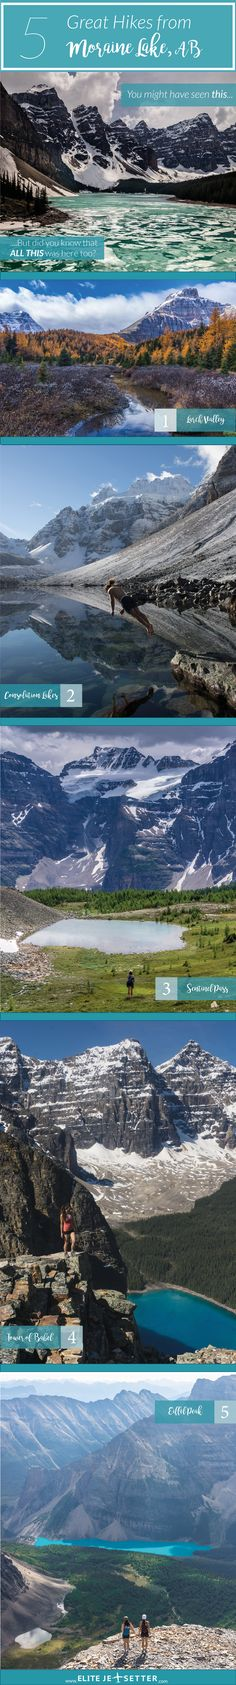 If you're planning a visit to Moraine Lake, make sure you check out some of the incredible hikes in the area. Climbing the rockpile will give you a stunning view, but there are so many more beautiful hikes in the area that get overlooked all the time! Visit our blog at Elitejetsetter.com for more info!  Things to do at Moraine Lake   Hikes in Banff National Park   Larch Valley   easy hikes near lake louise   Beautiful mountain views in Banff National Park.